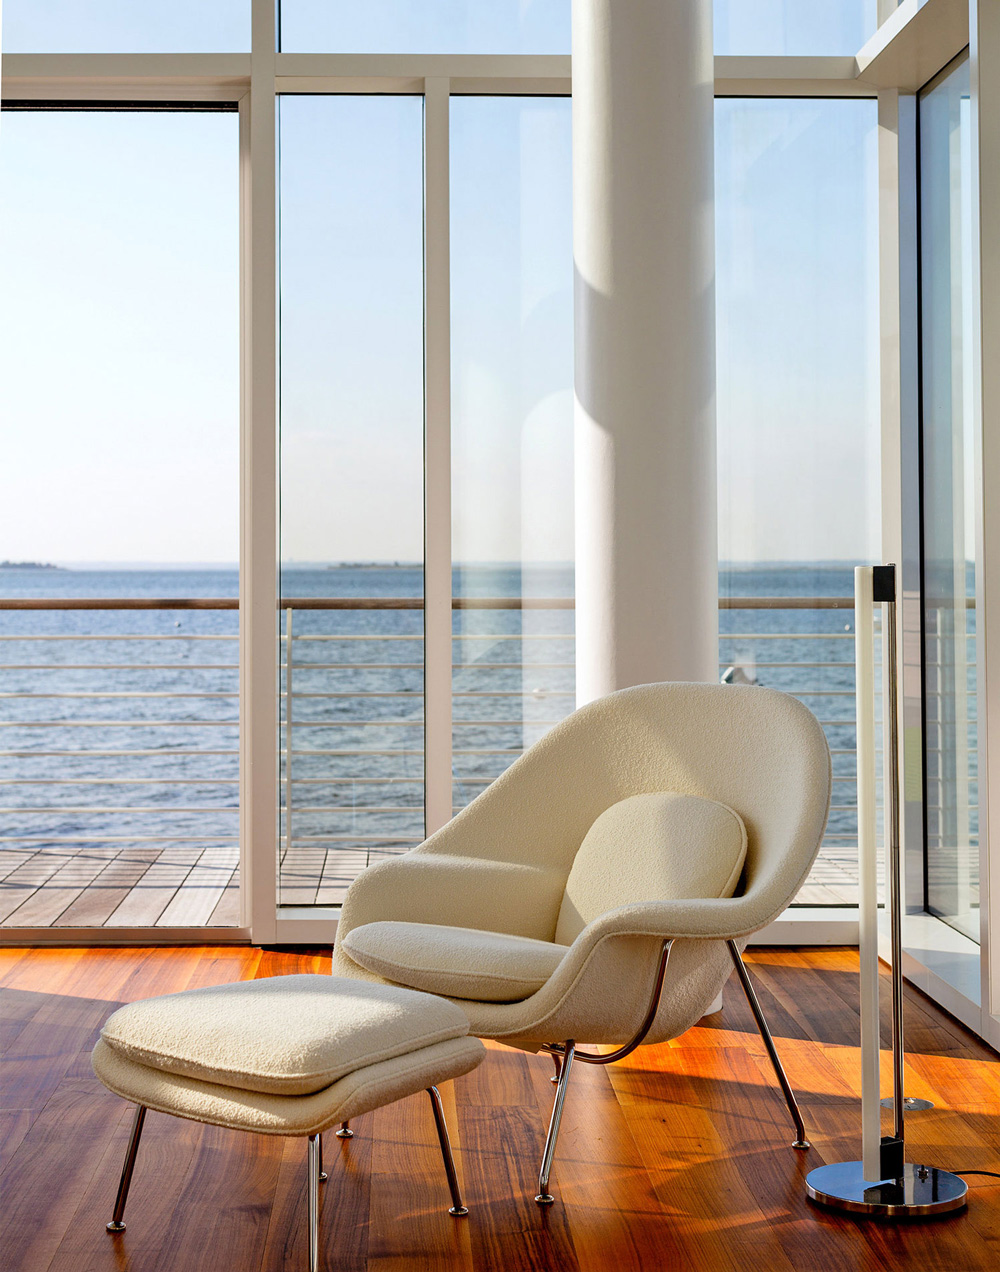 Wood Floors, Ocean Views, Lighting, Seating, Richard Meier's Fire Island House